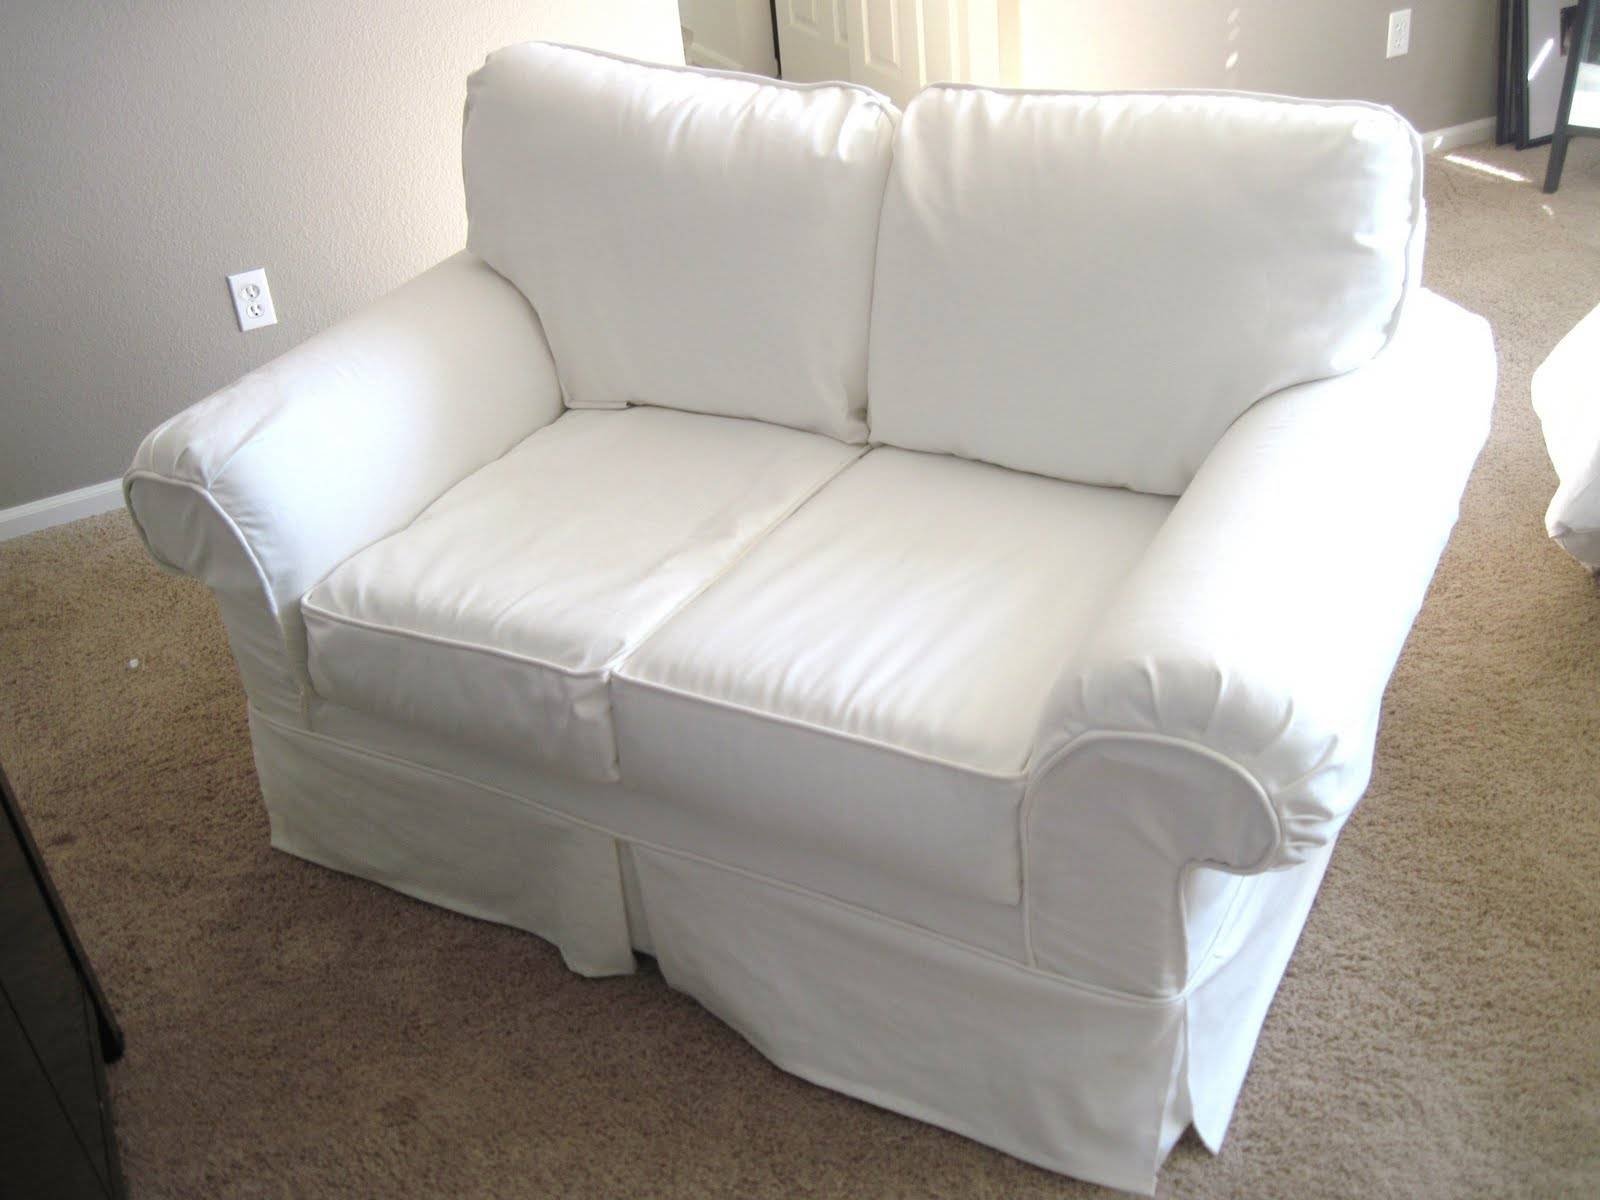 Furniture: Couch Slipcovers | Couch Covers Kohls | Couch Covers for Sofa Loveseat Slipcovers (Image 8 of 30)